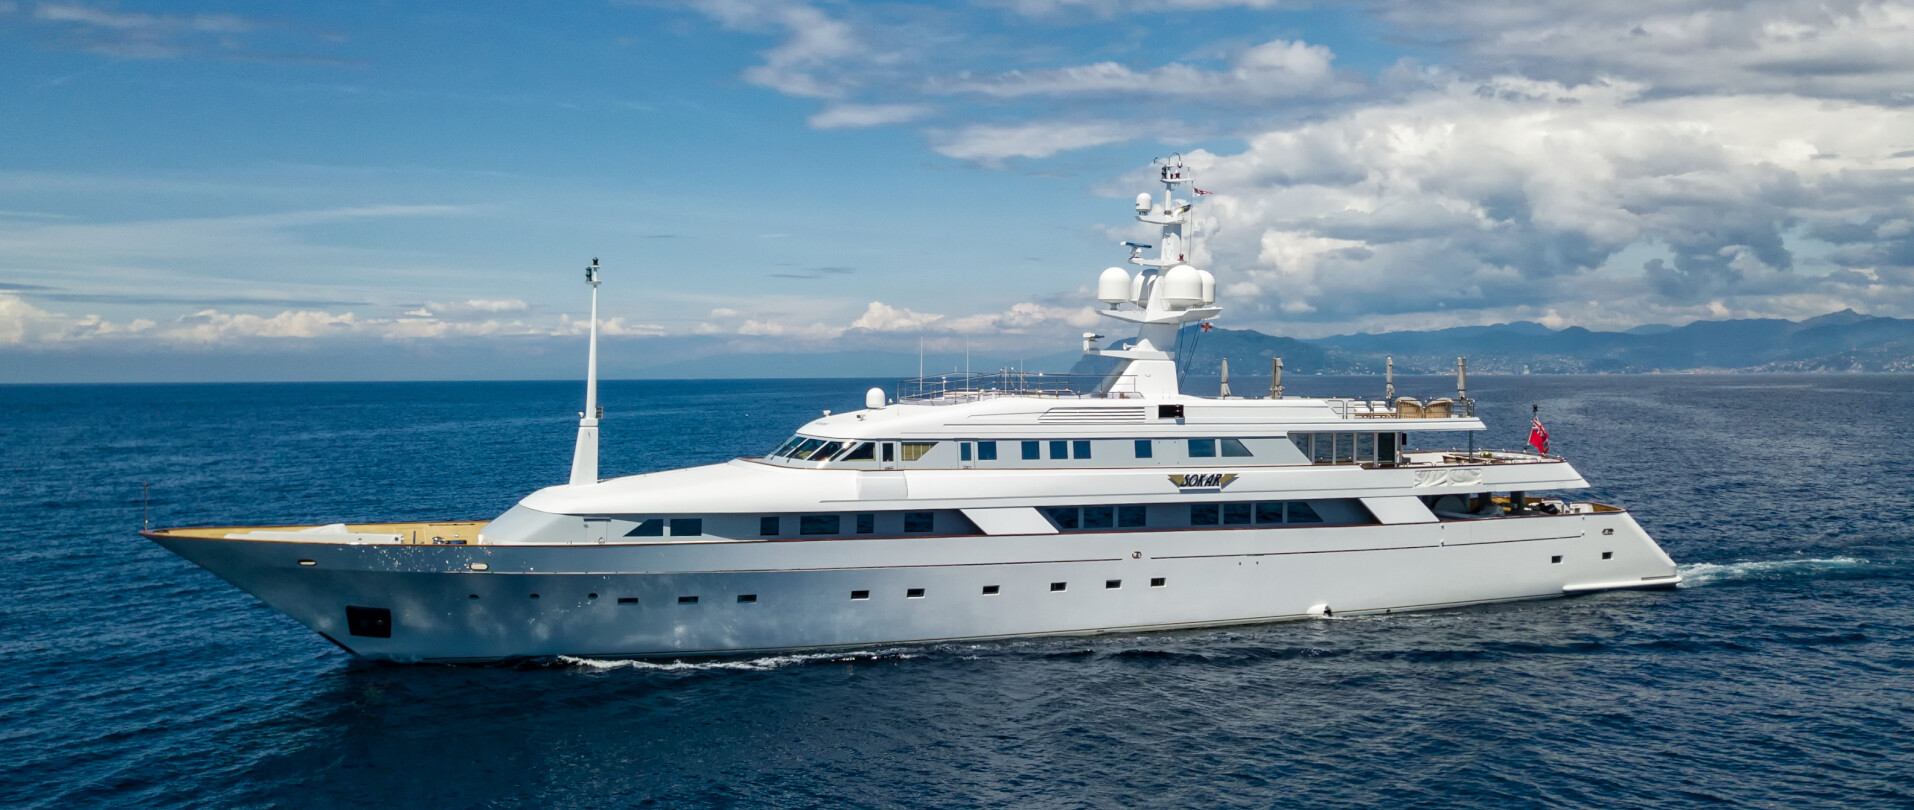 Following another successful sale, Edmiston welcomes four more yachts for sale photo 1